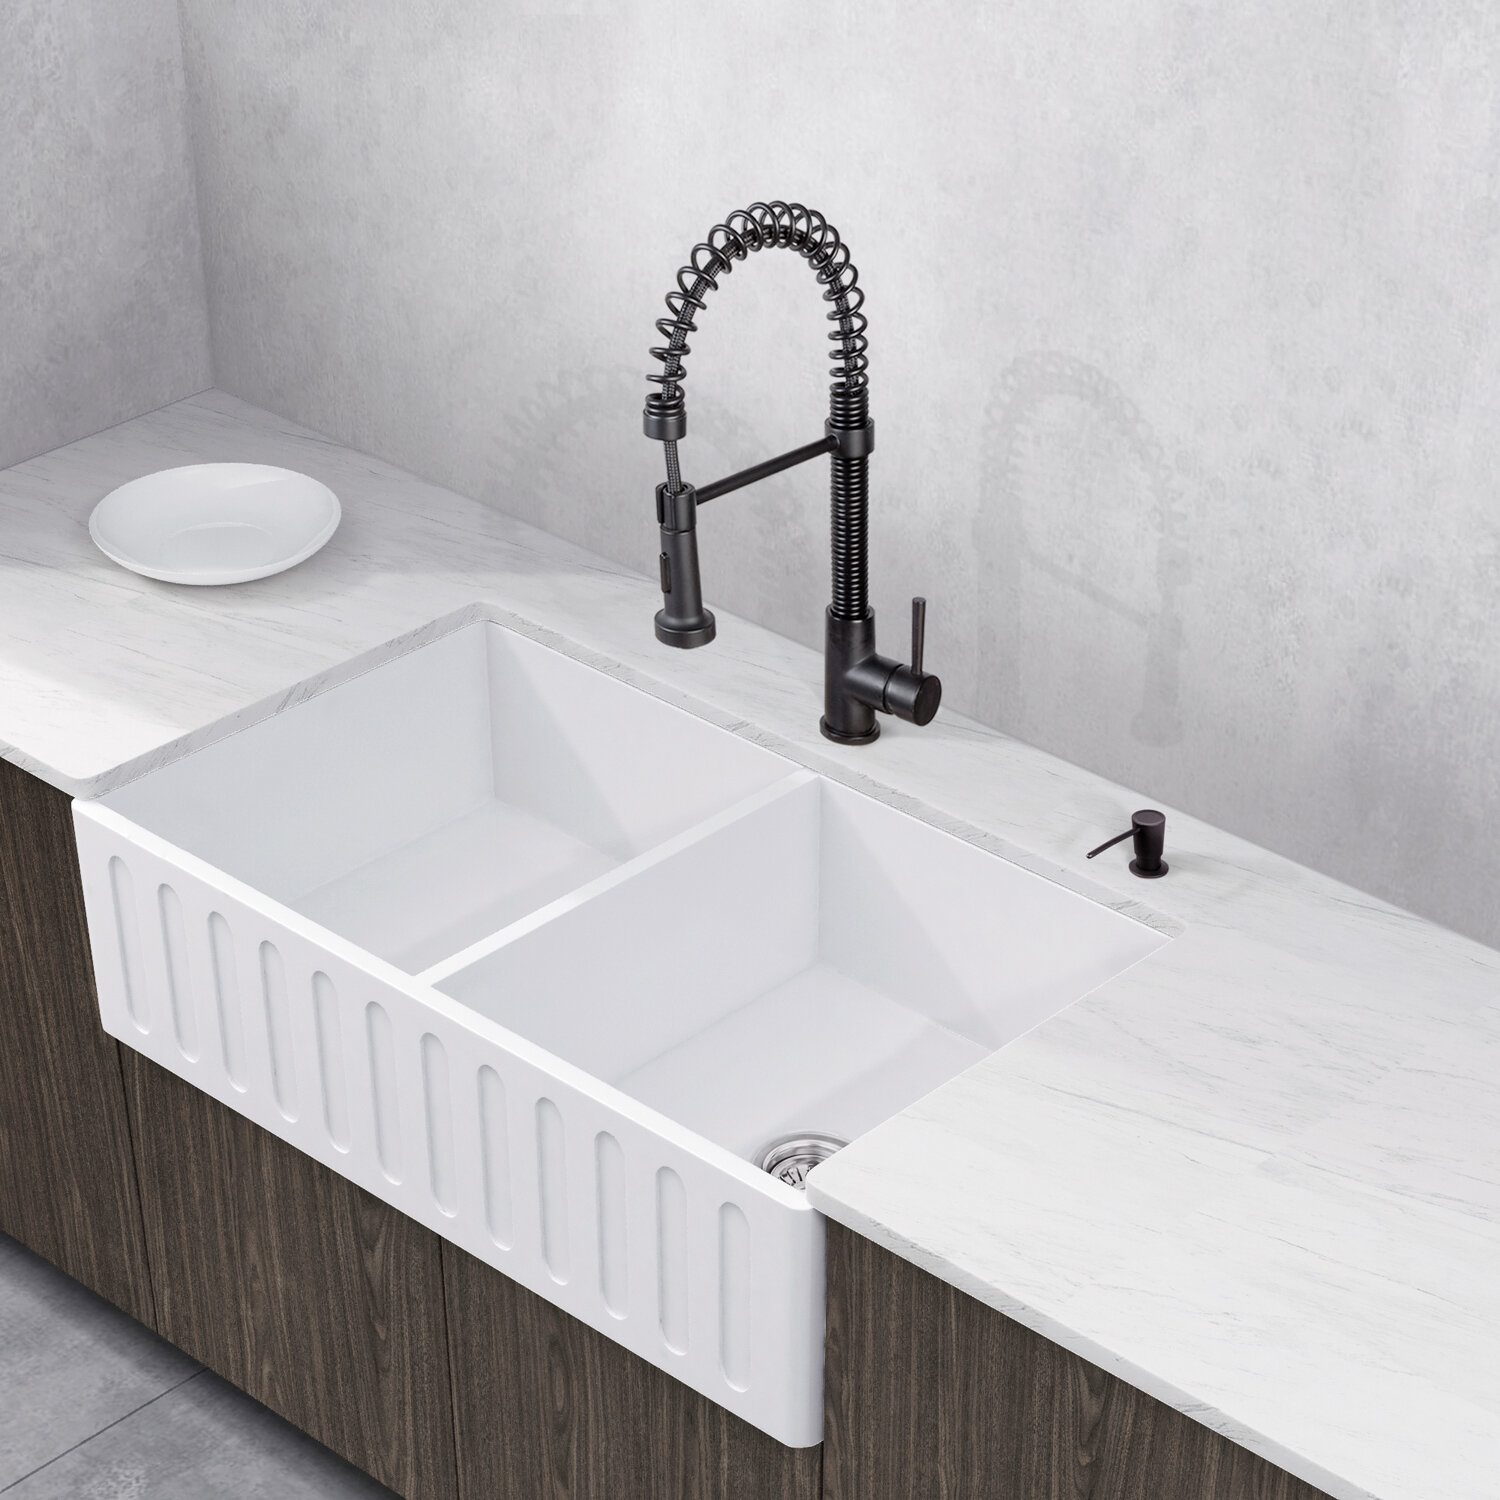 Stone 36 L X 18 W Double Basin Farmhouse Kitchen Sink With Faucet